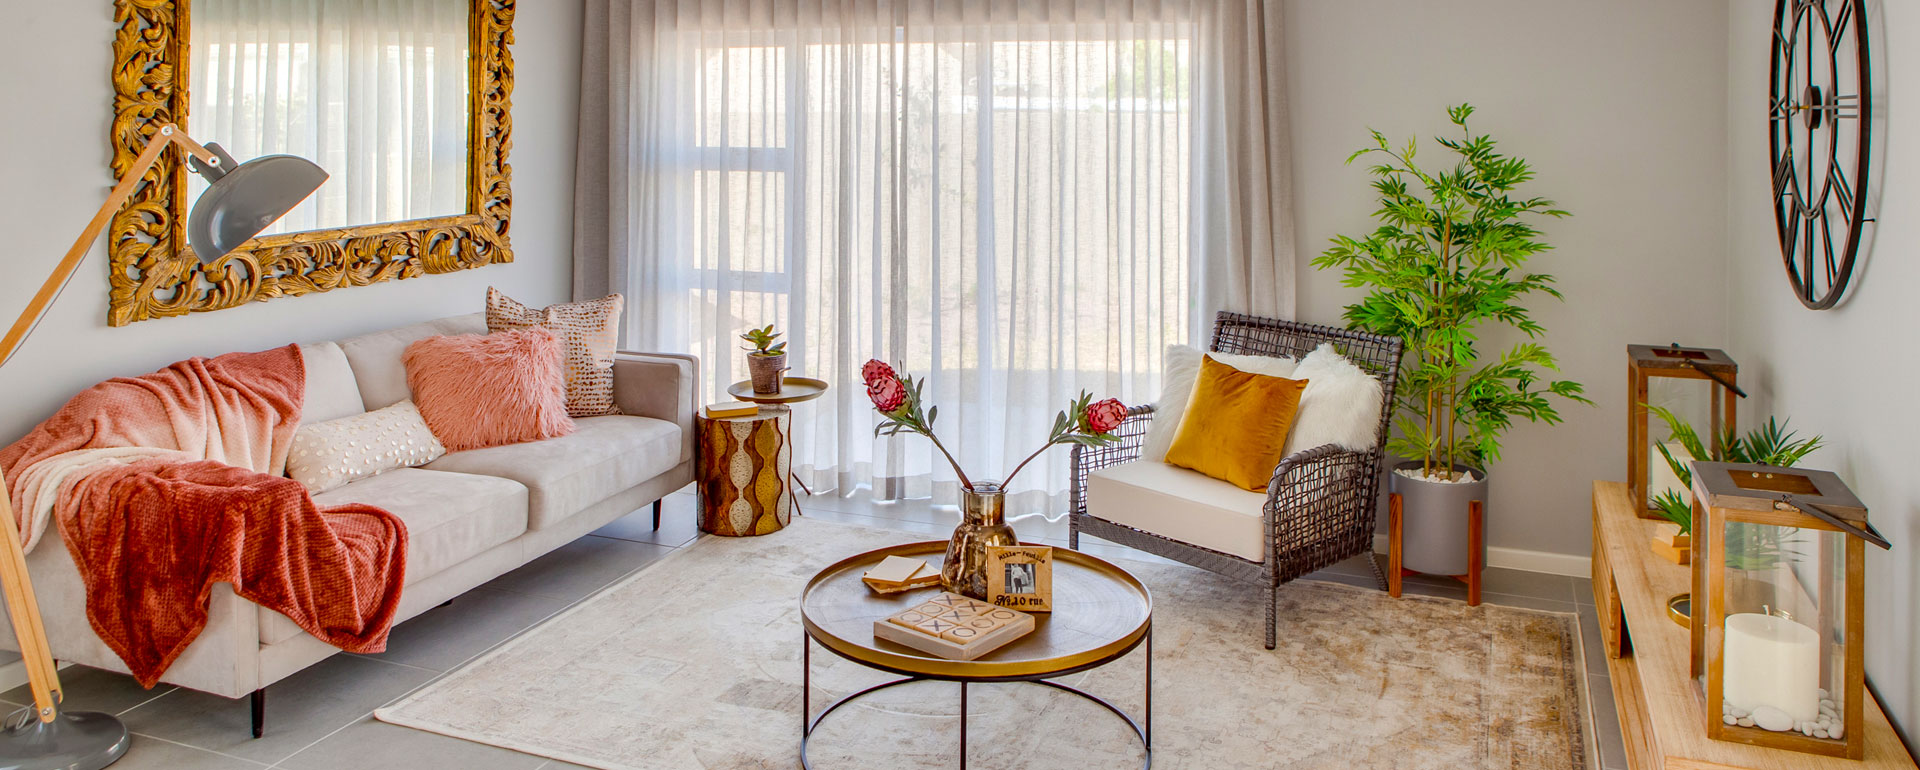 Bespoke interior design & decorating services, window treatments such as curtains or blinds